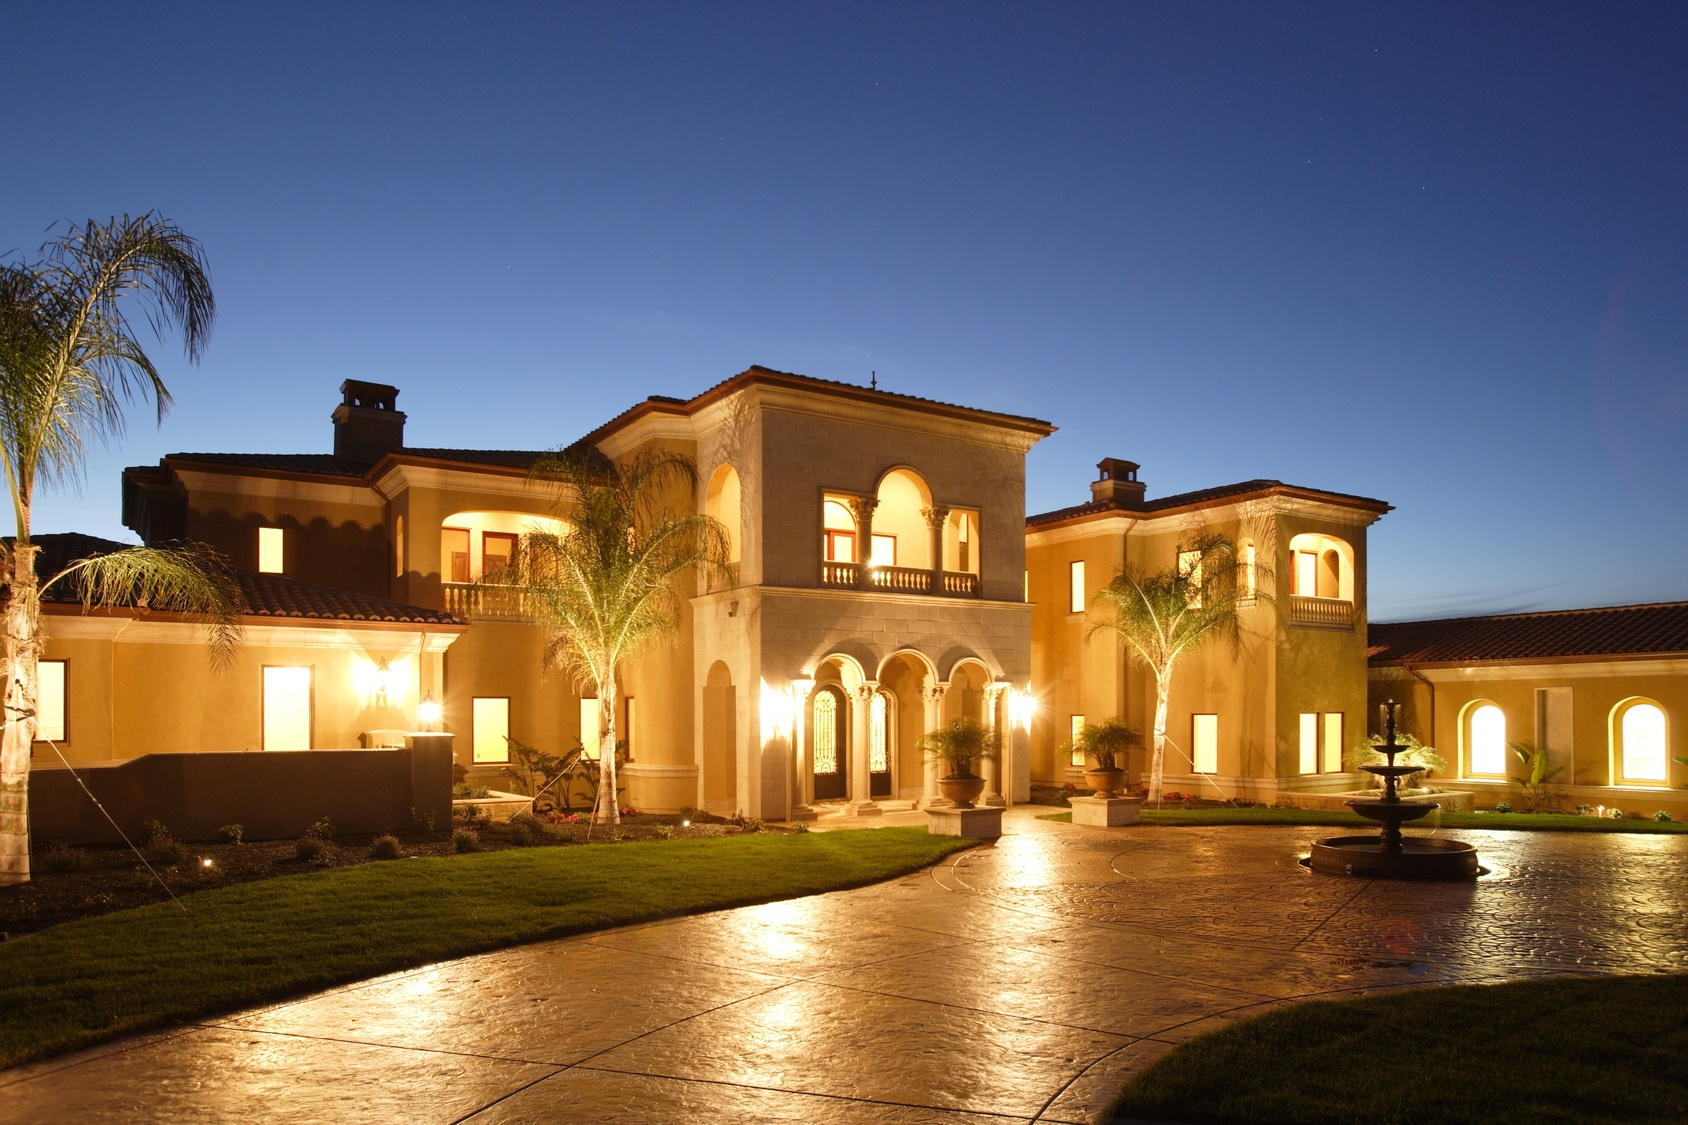 Orlando area home styles mediterranean villas to high for Architectural homes